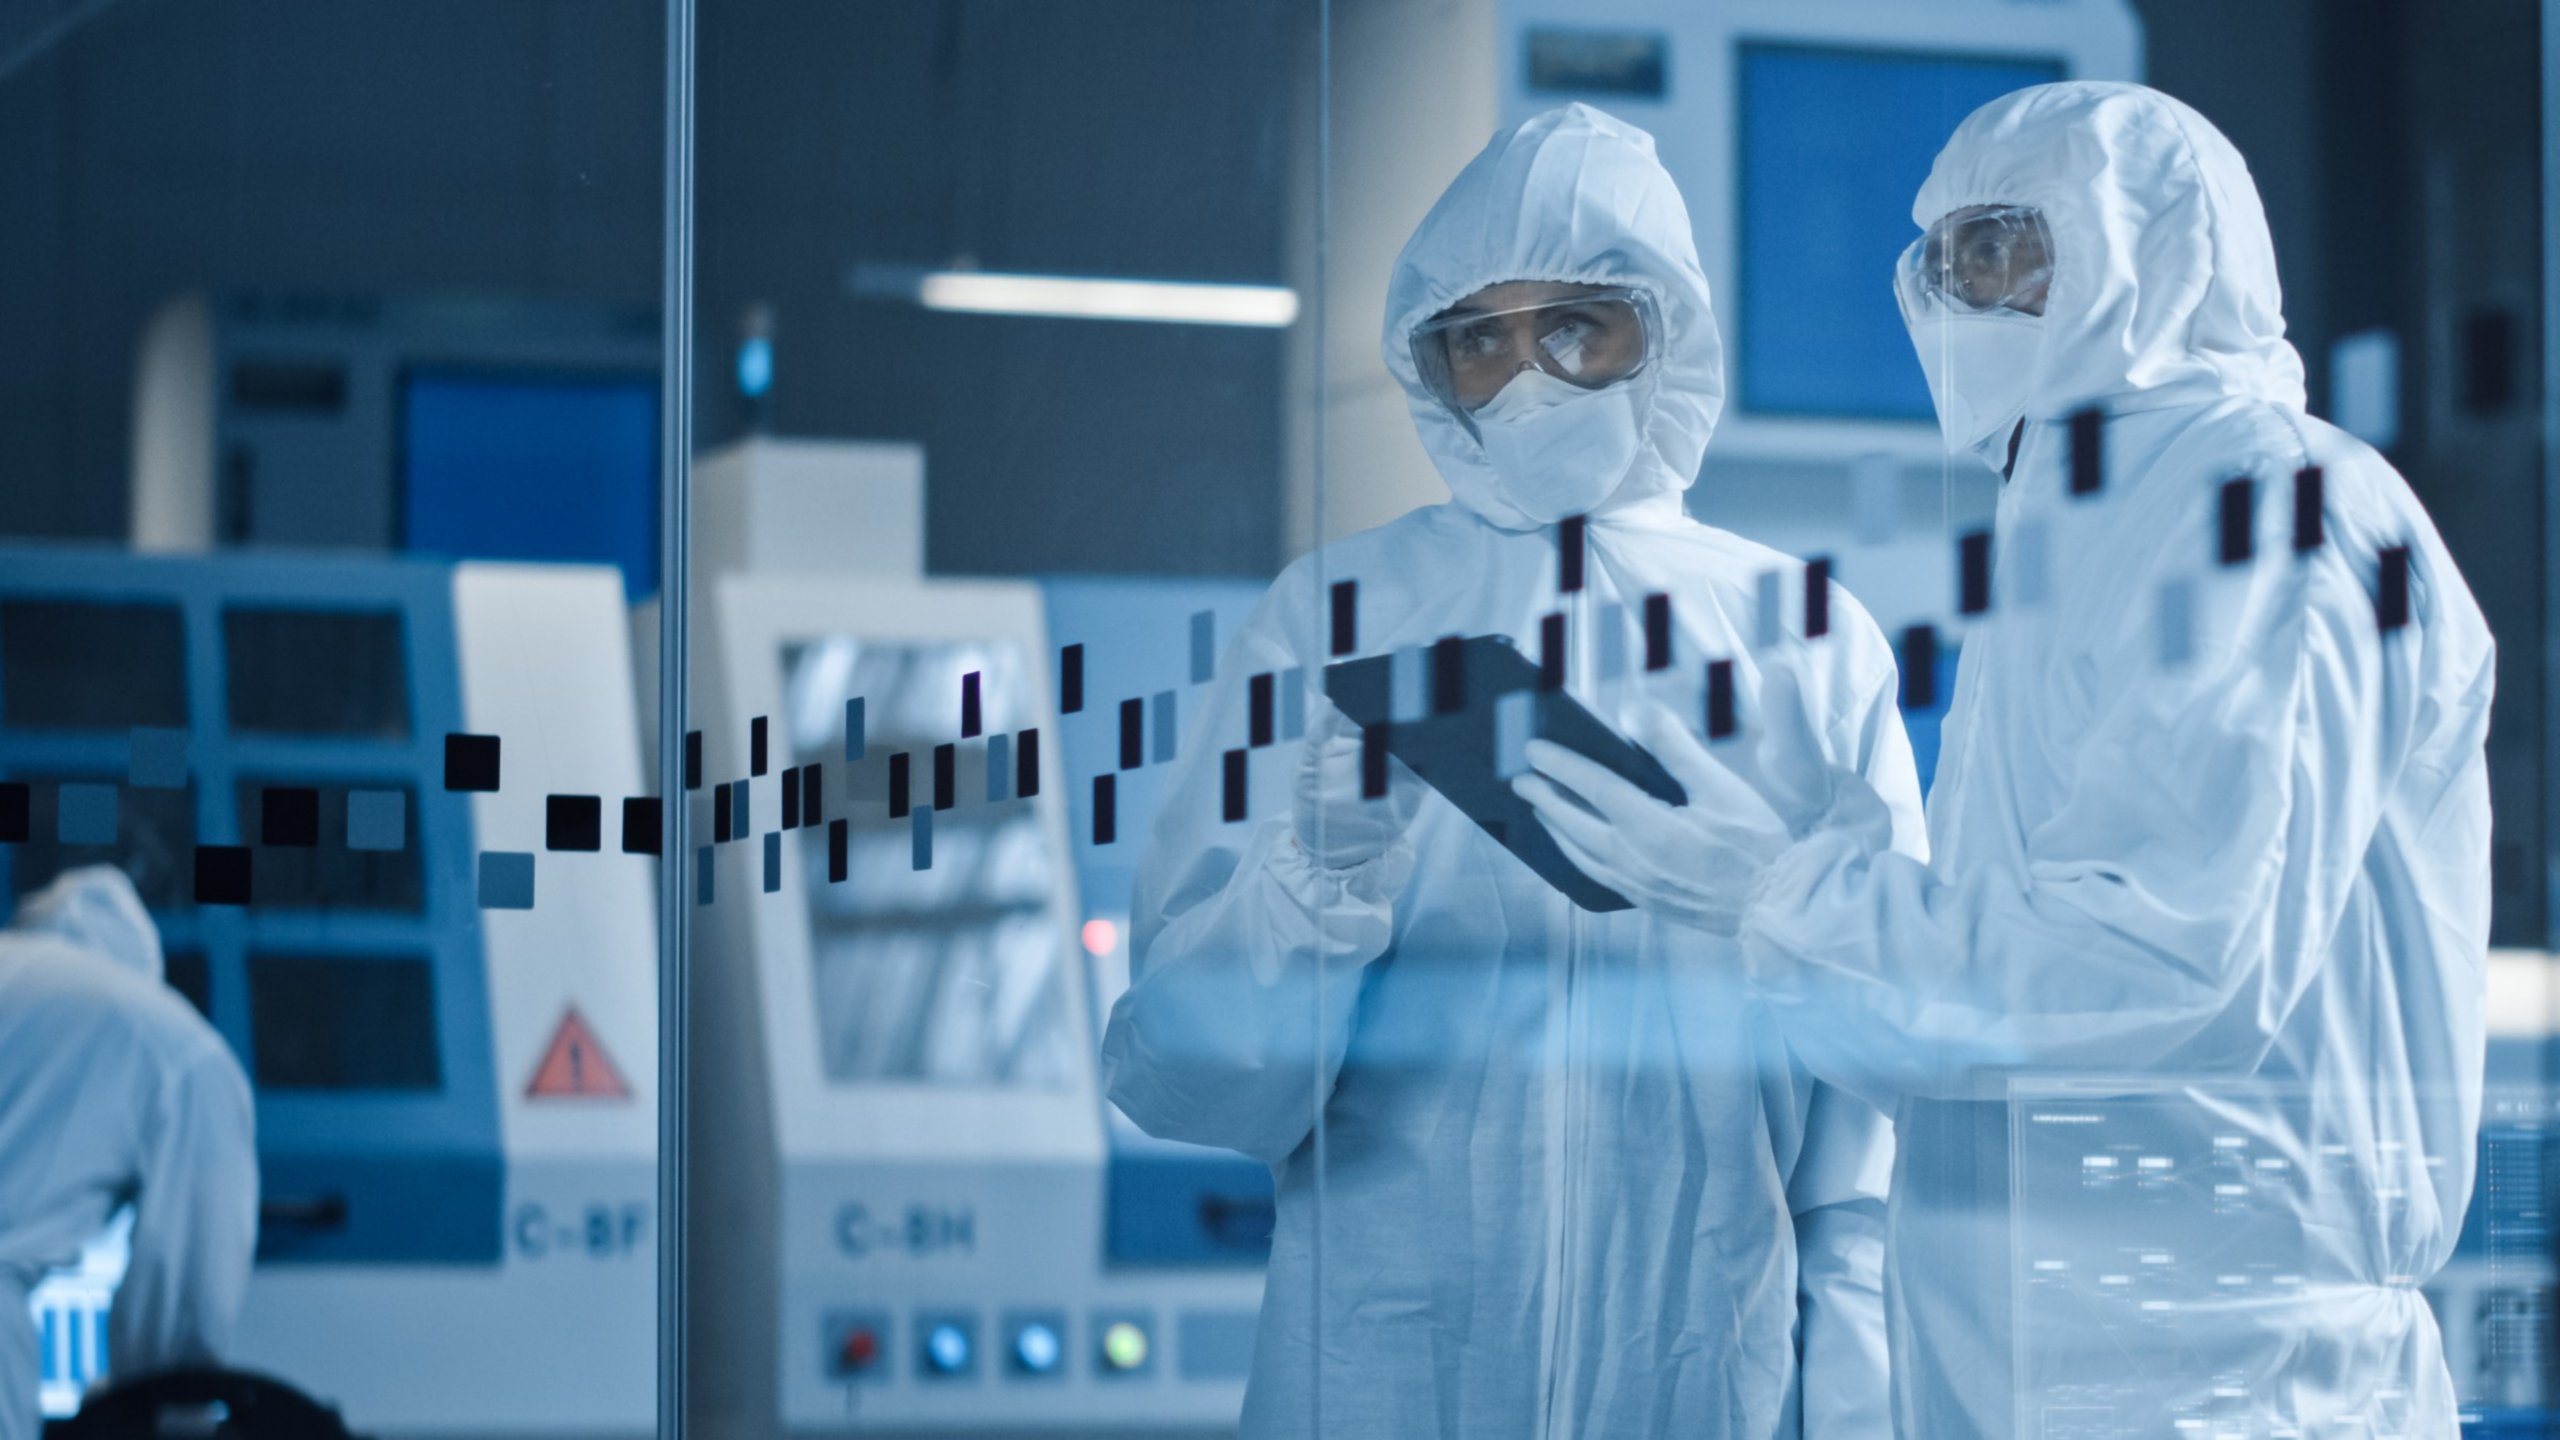 Two Life Sciences professionals in coveralls and safety glasses review analytics on a tablet while looking in on the production process at their organization's facility.